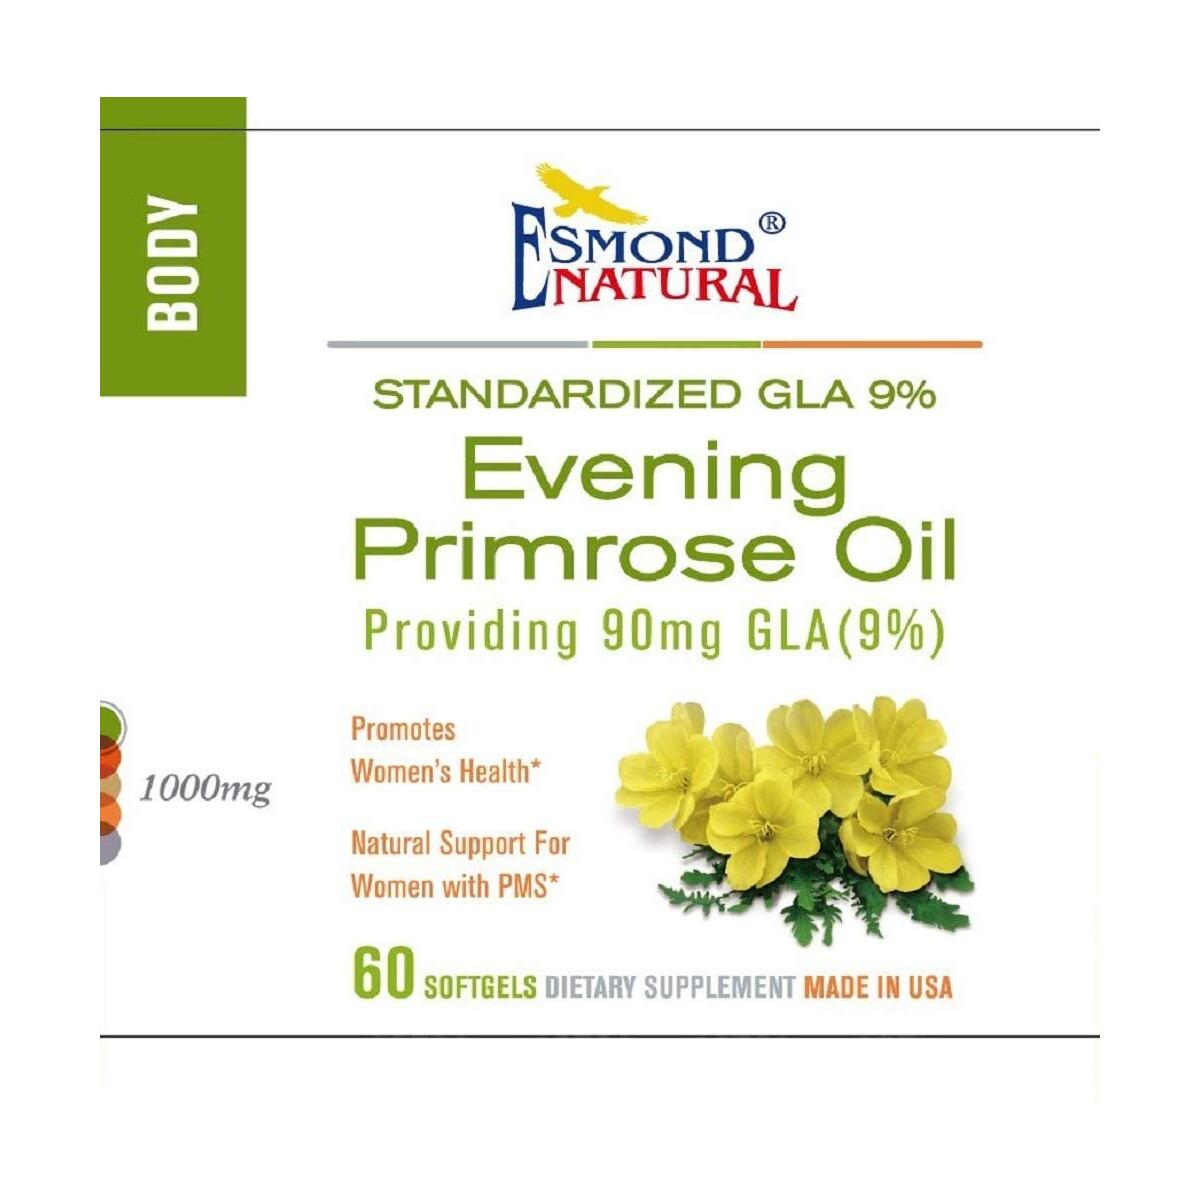 (3 Count, 10% Off) Esmond Natural: Evening Primrose Oil (Promotes Women Health, Natural Support for Women PMS), GMP, Natural Product Assn Certified, Made in USA-1000mg, 180 Softgels